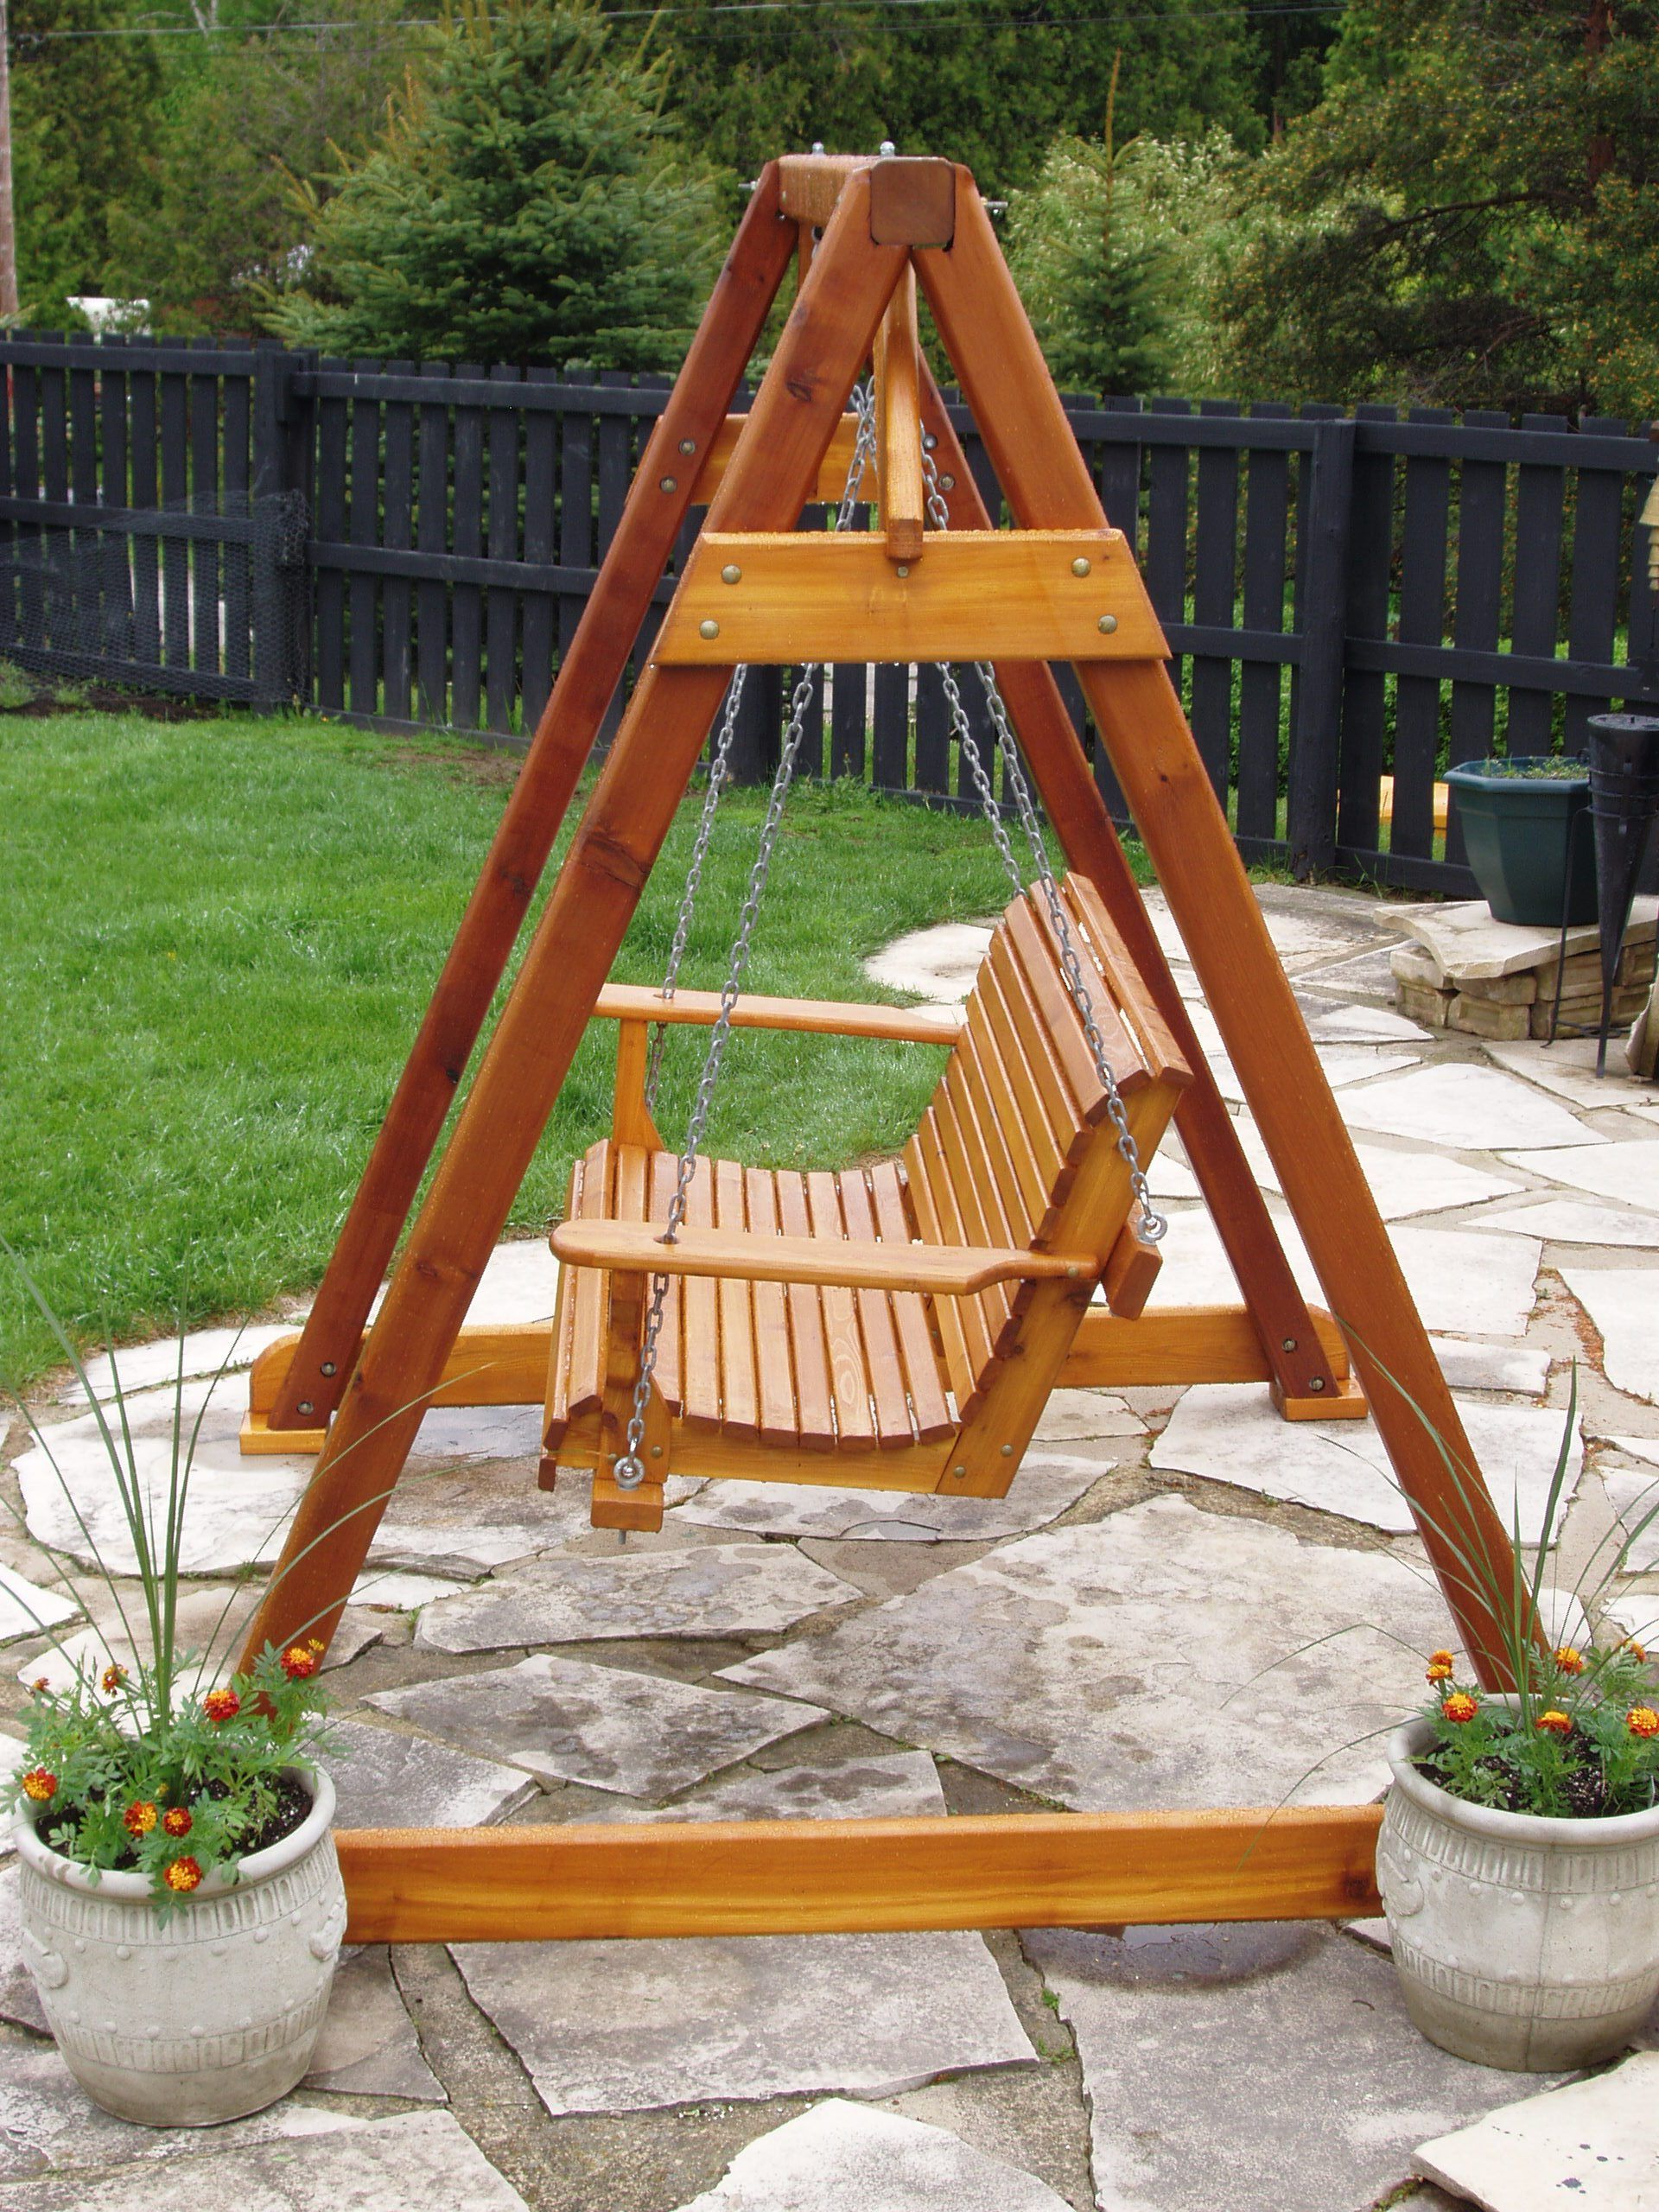 Preferred Build Diy How To Build A Frame Porch Swing Stand Pdf Plans Inside Patio Porch Swings With Stand (View 4 of 30)